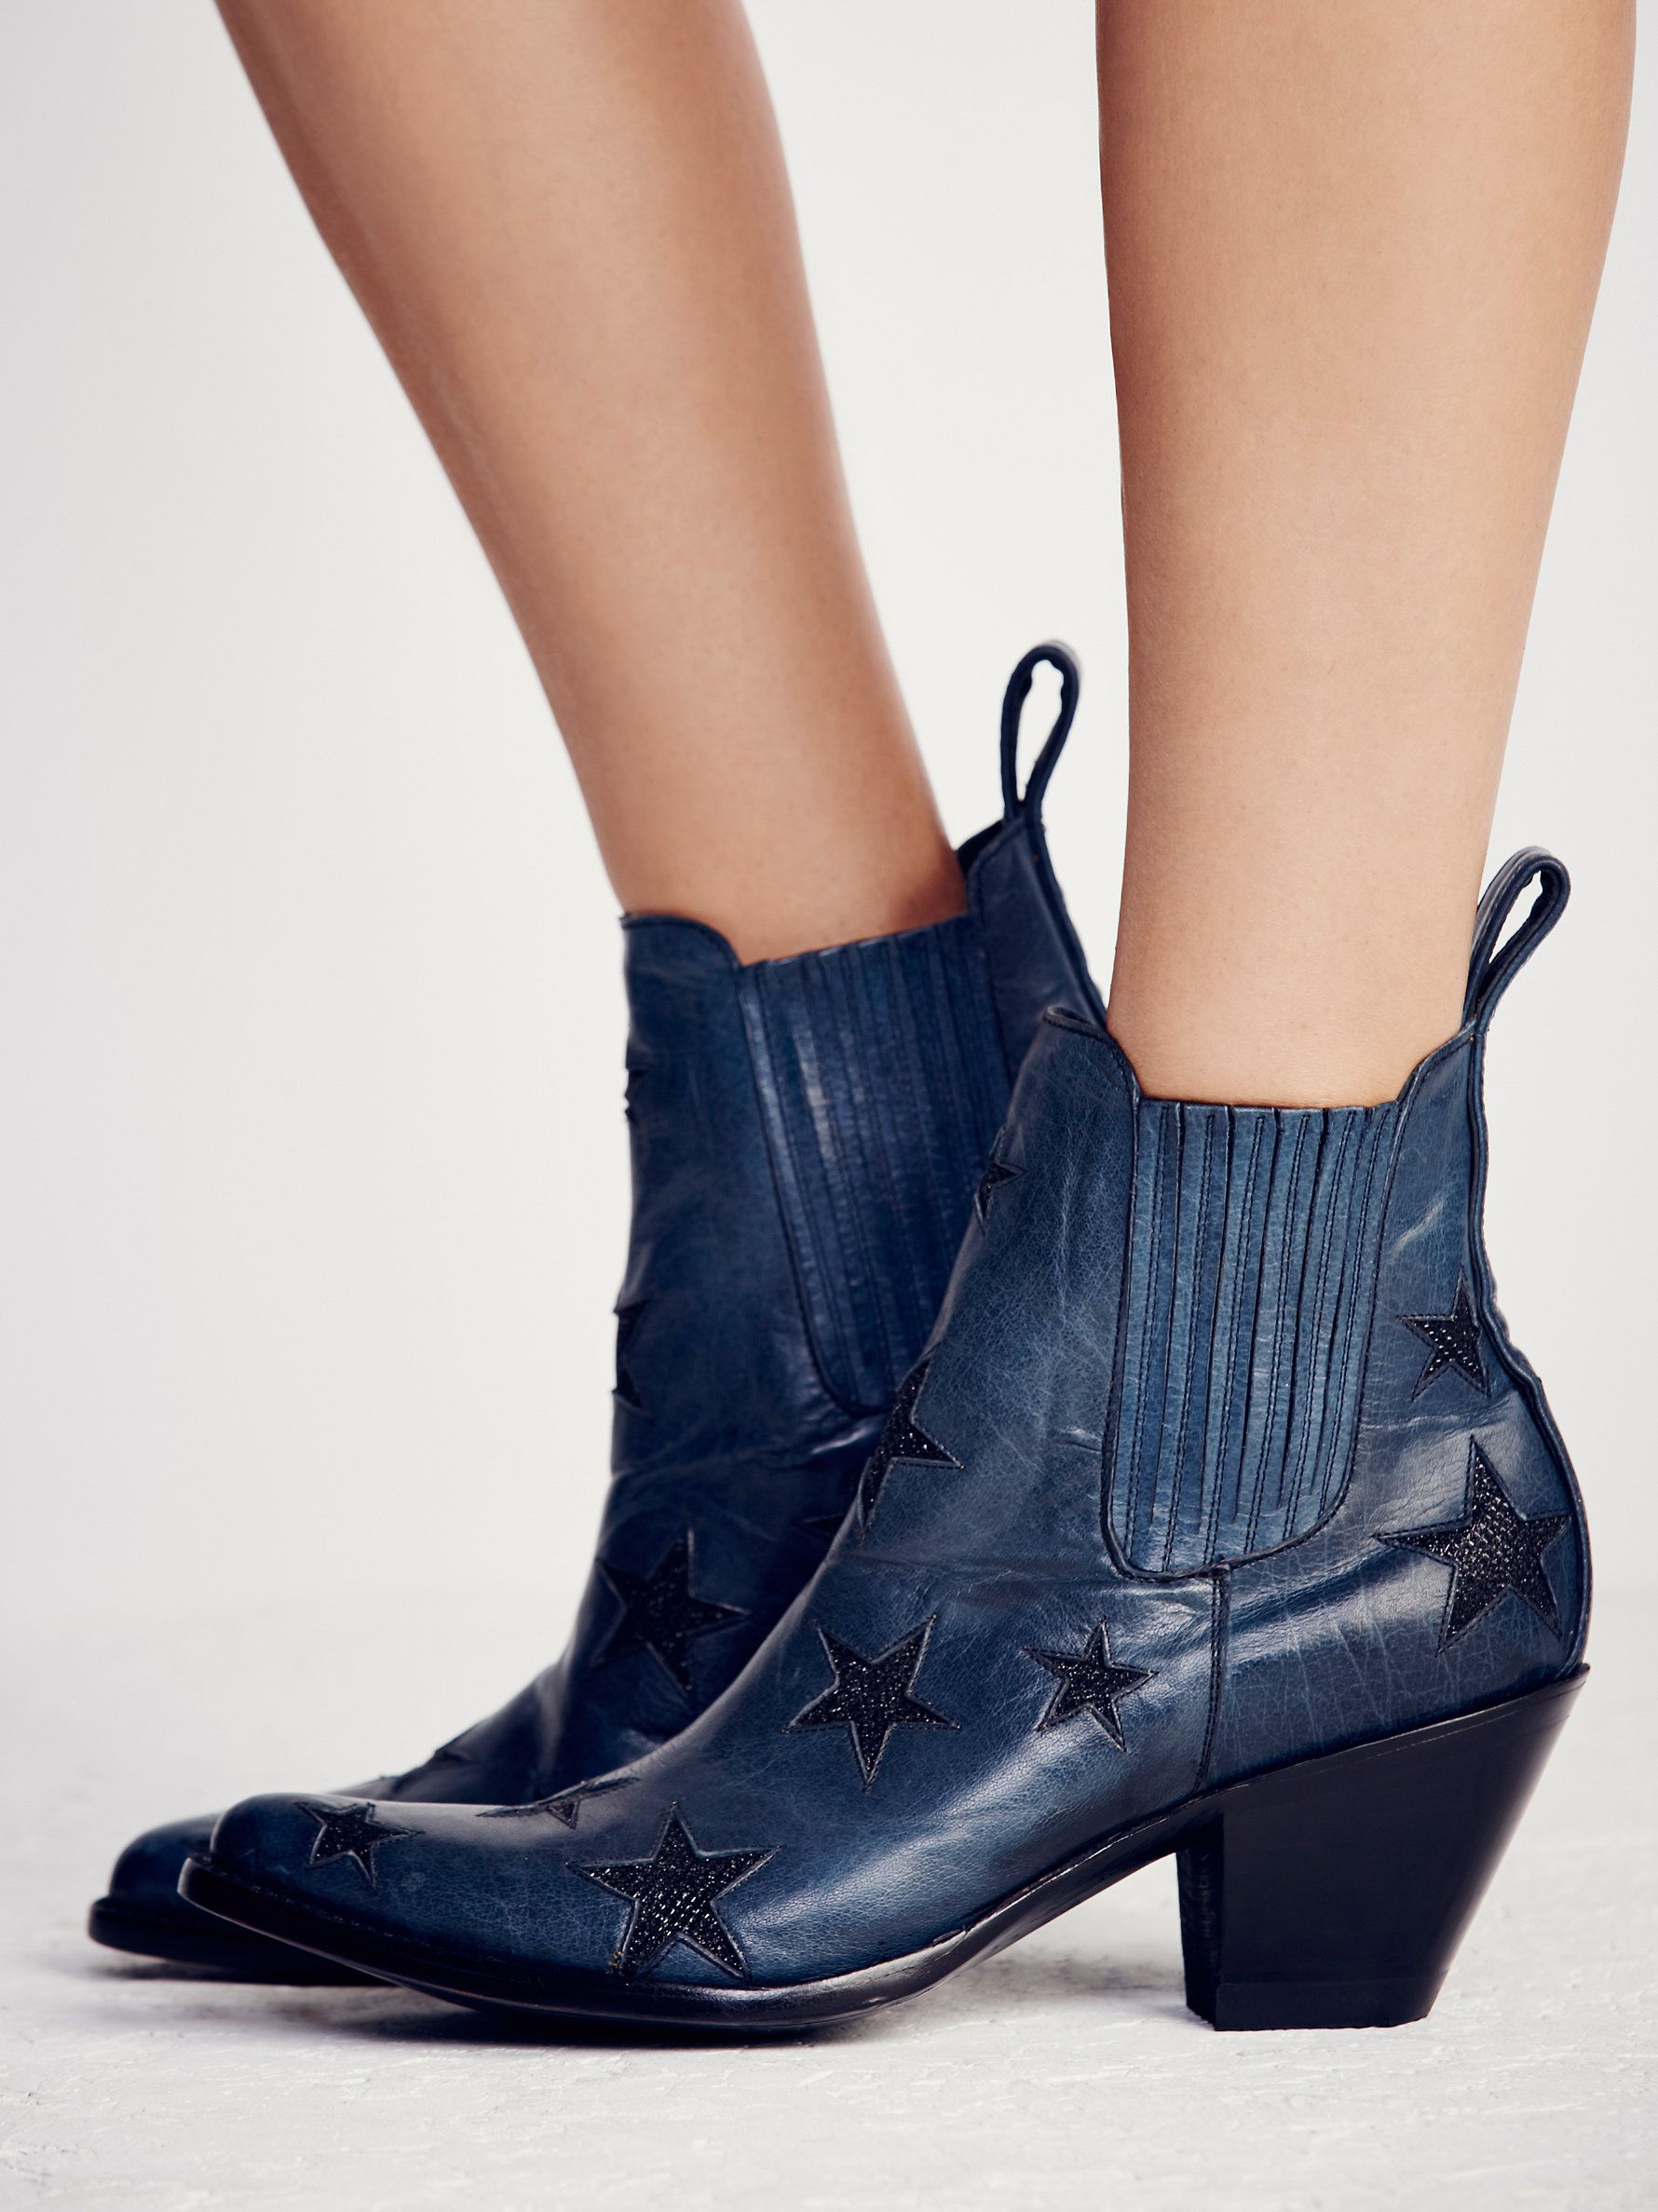 Reach For The Stars Ankle Boot Kitten Heel Ankle Boots Womens Boots Ankle Chunky Heels Casual